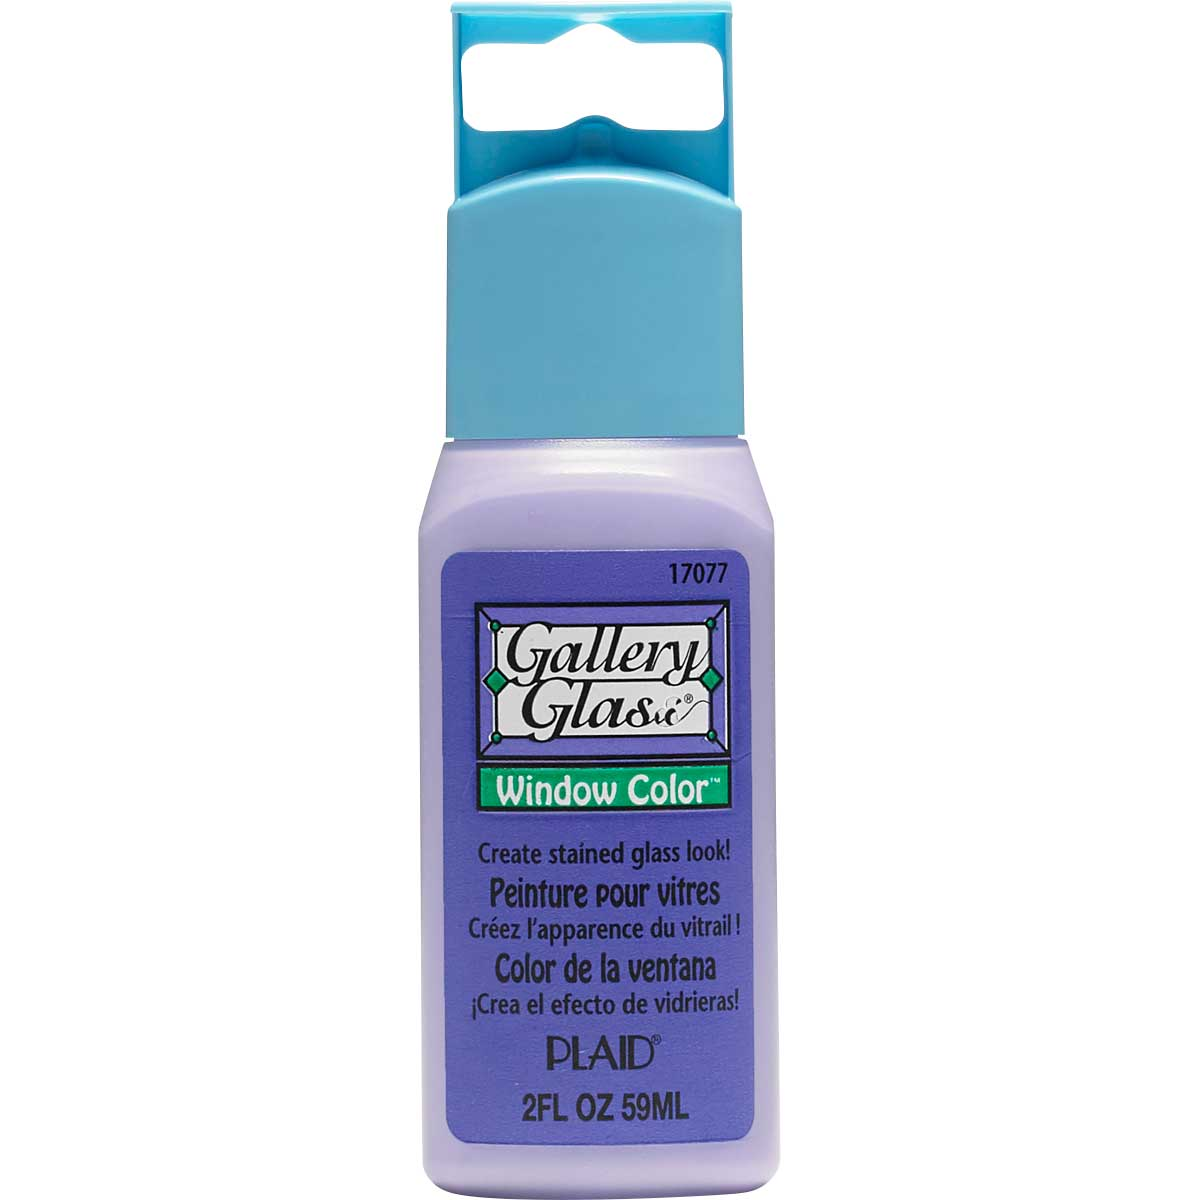 Gallery Glass ® Window Color™ - Lavender, 2 oz.